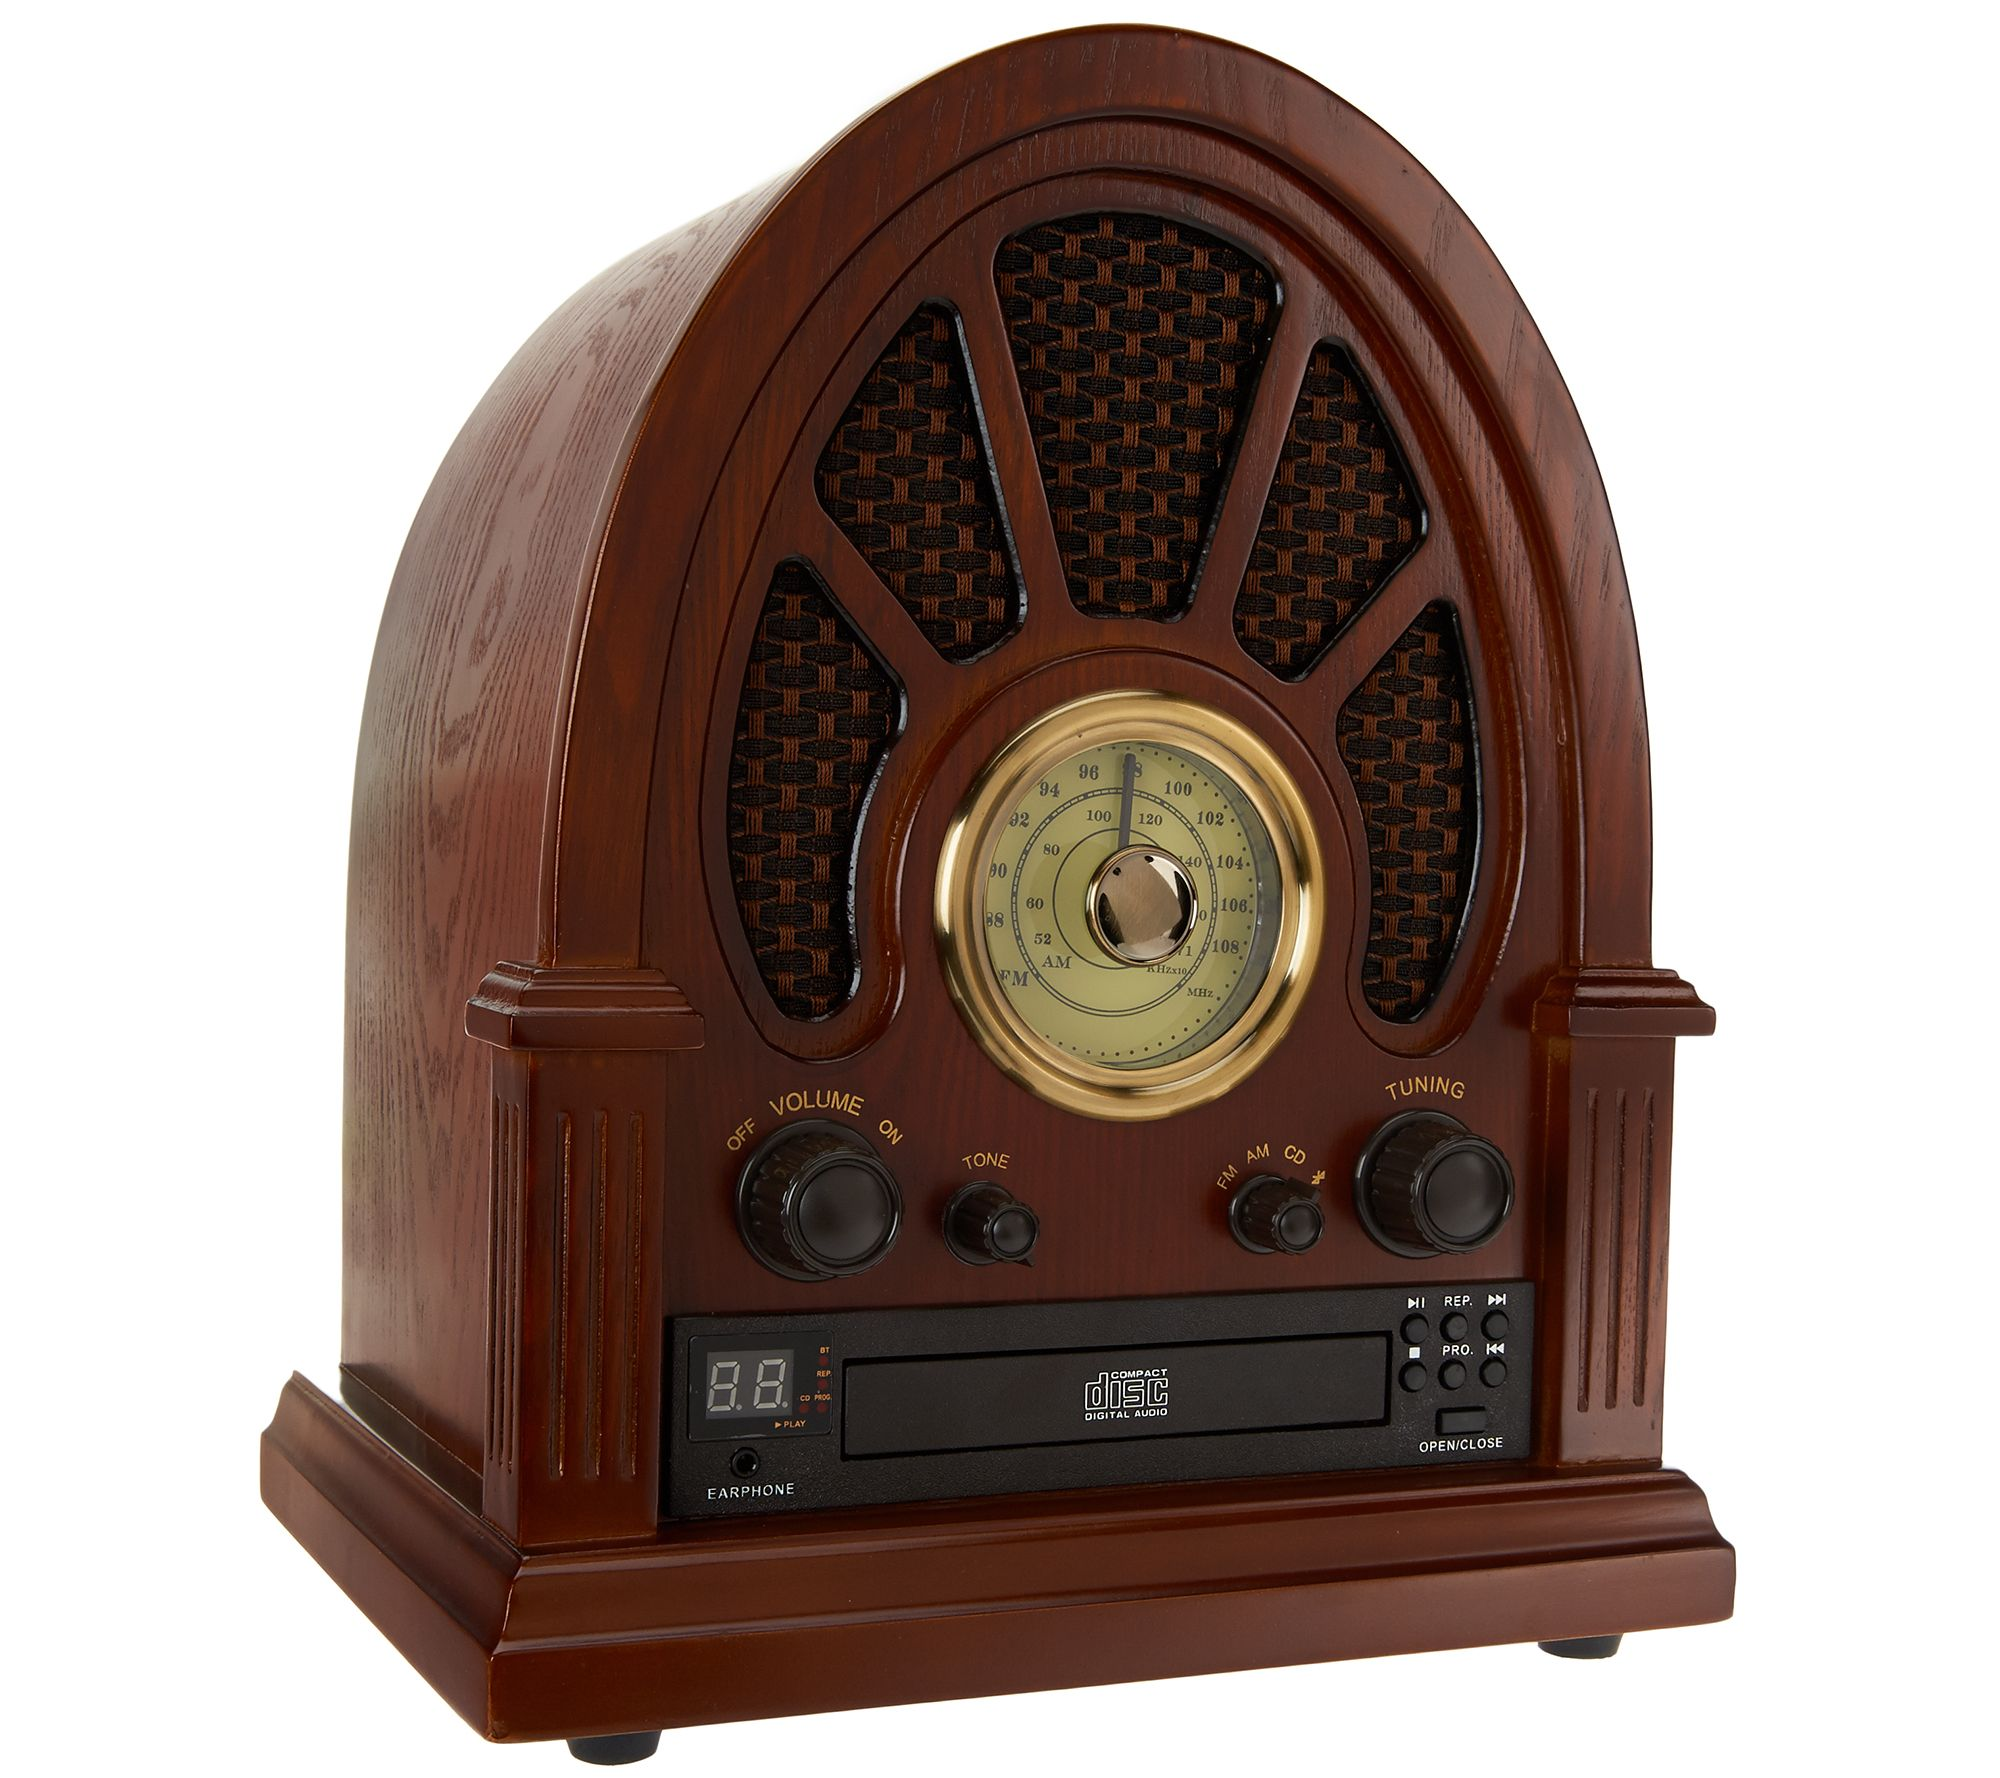 Qvc Home Decor Vintage Wooden Radio With Cd Player Am Fm Radio